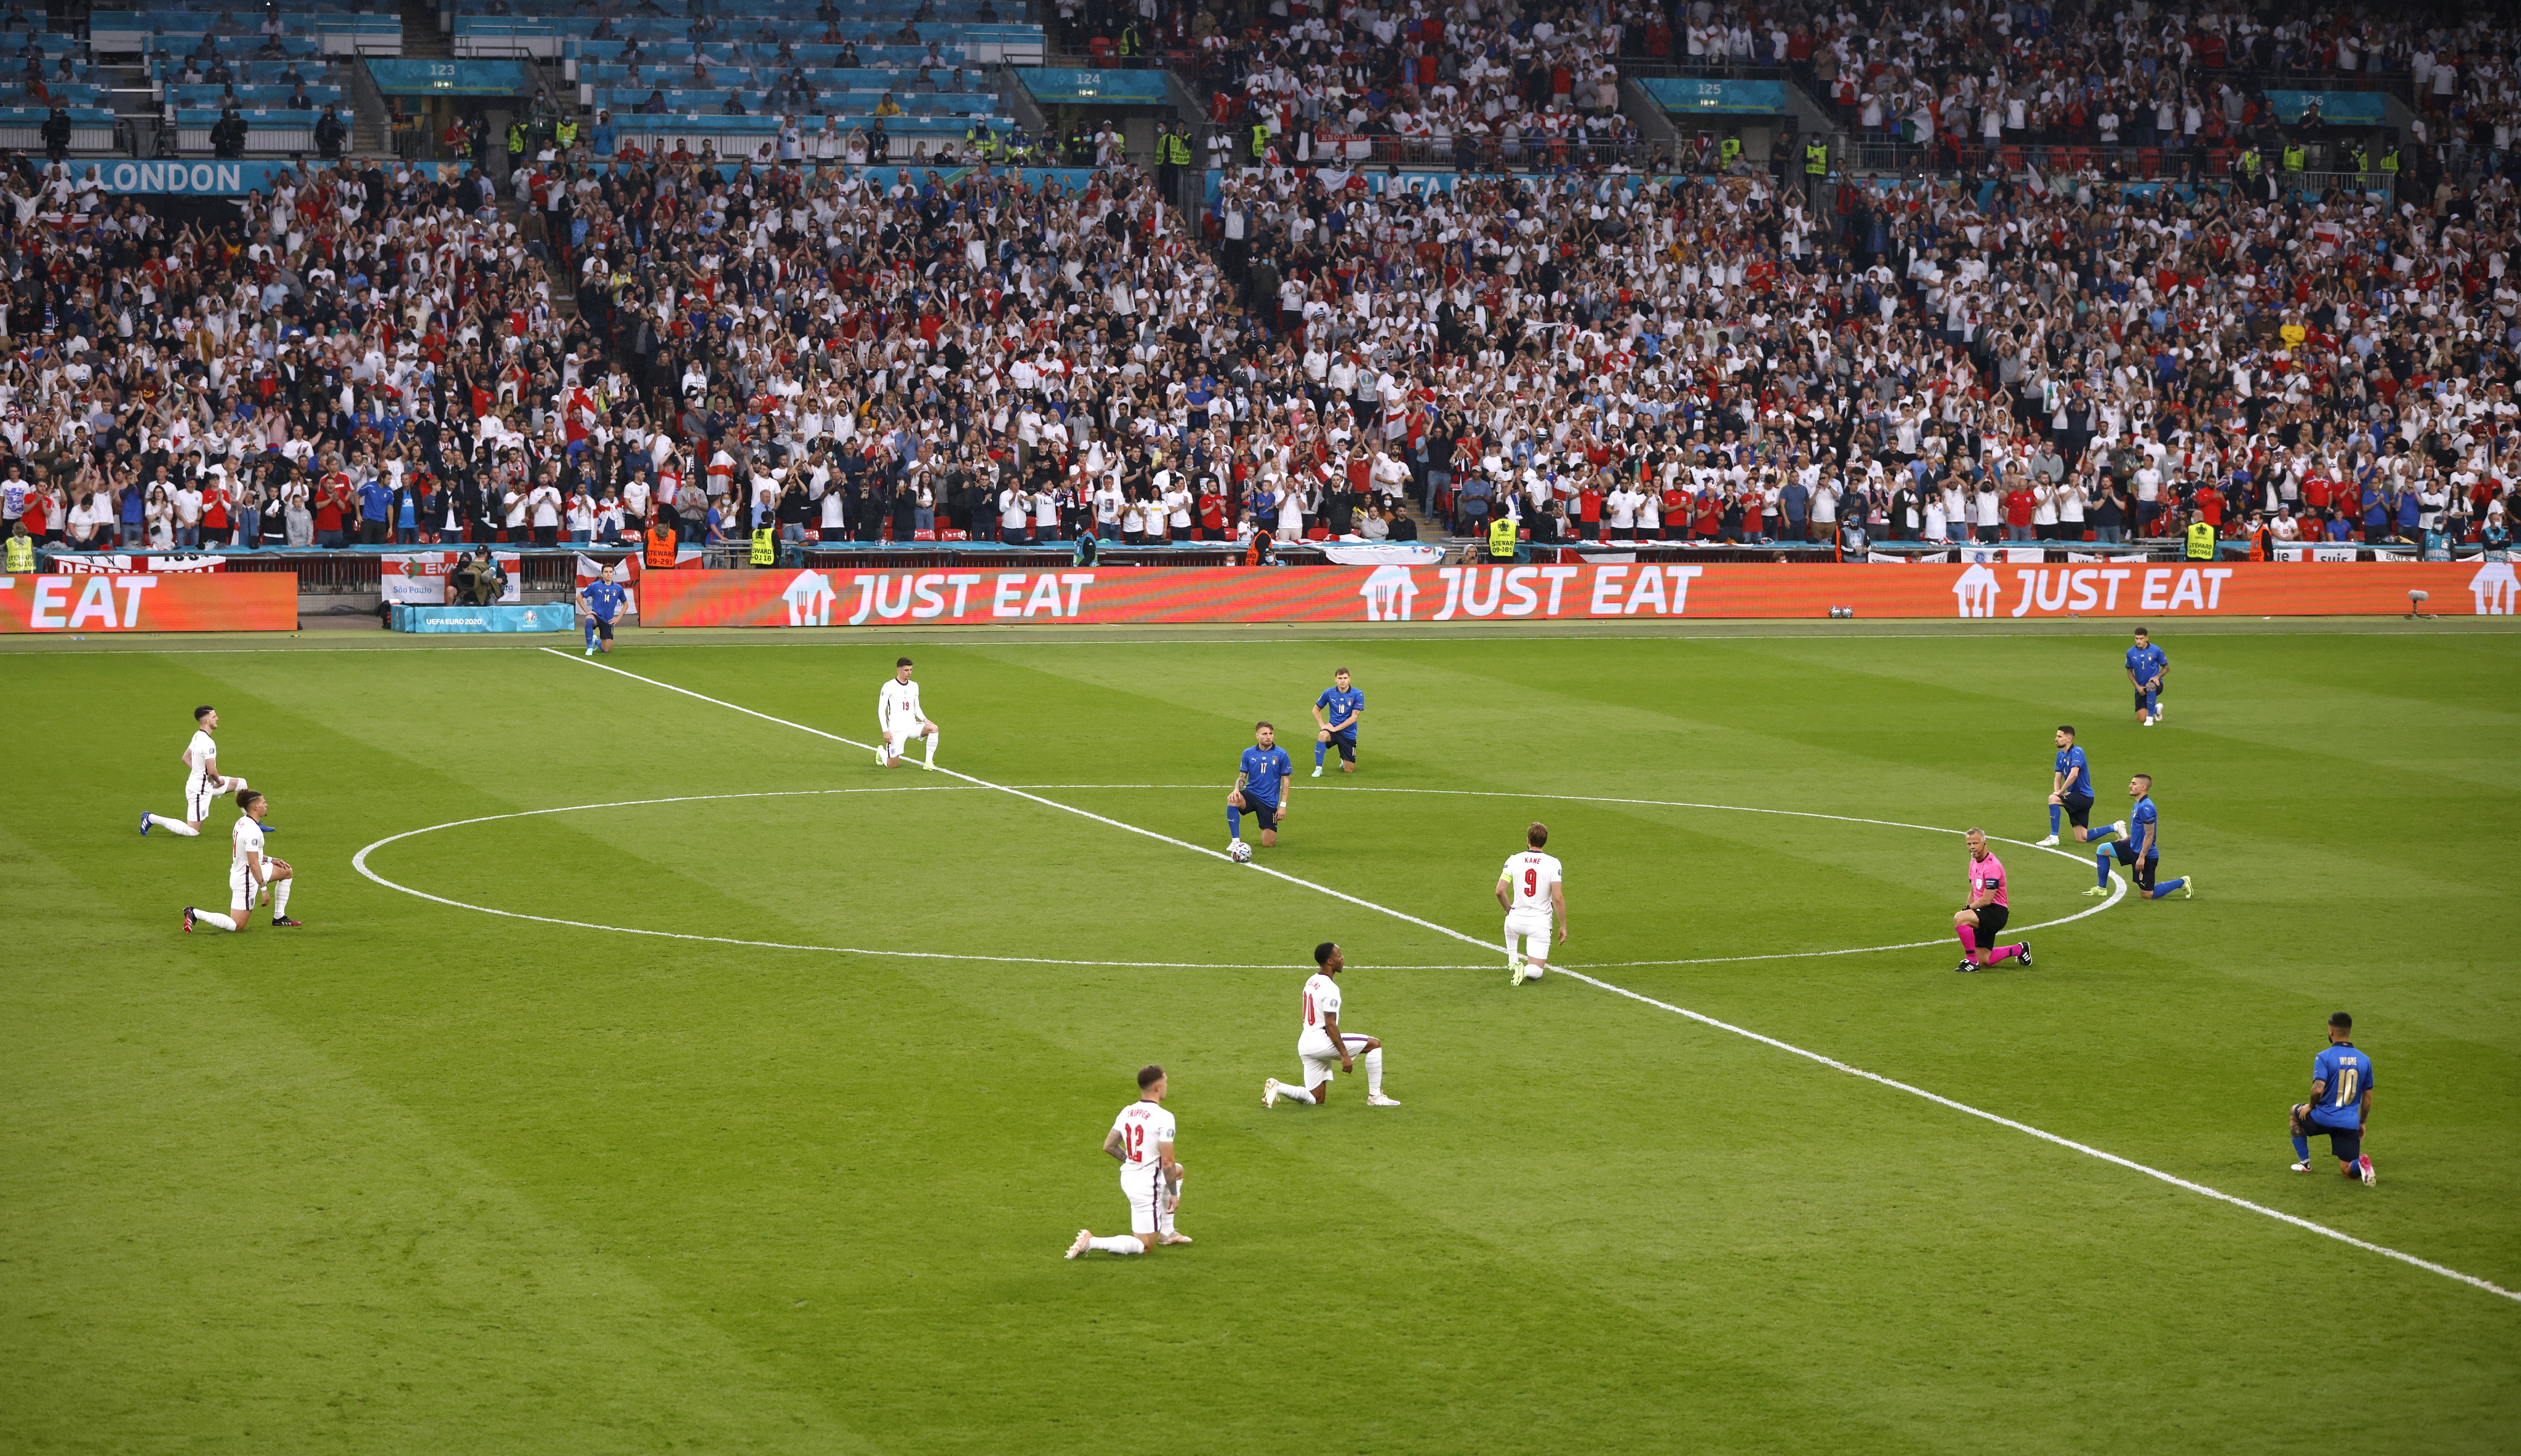 soccer Football - Euro 2020 - Final - Italy v England - Wembley Stadium, London, Britain - July 11, 2021 General view of players taking the knee before the match